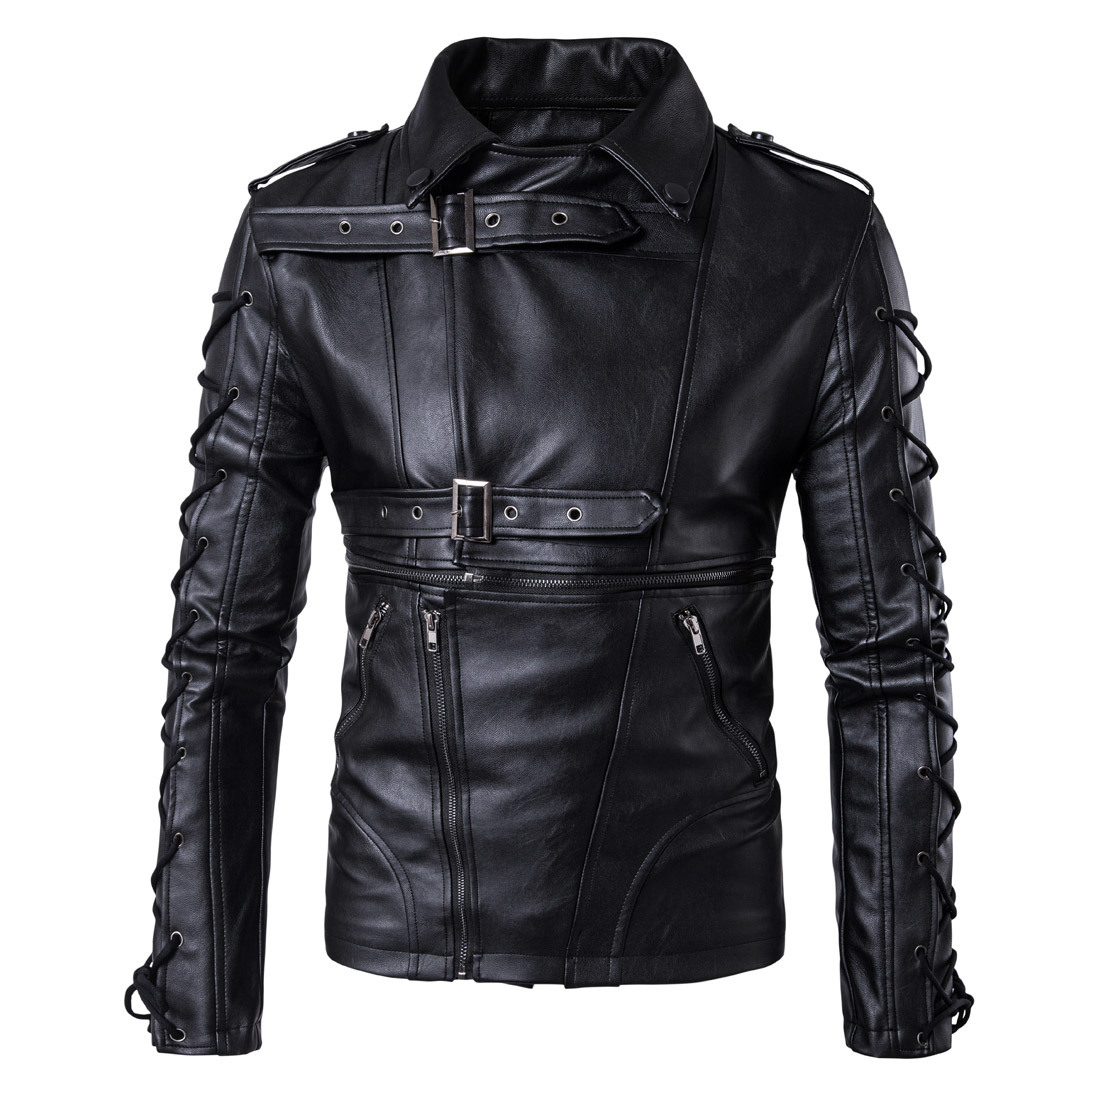 Famous leather jacket brands